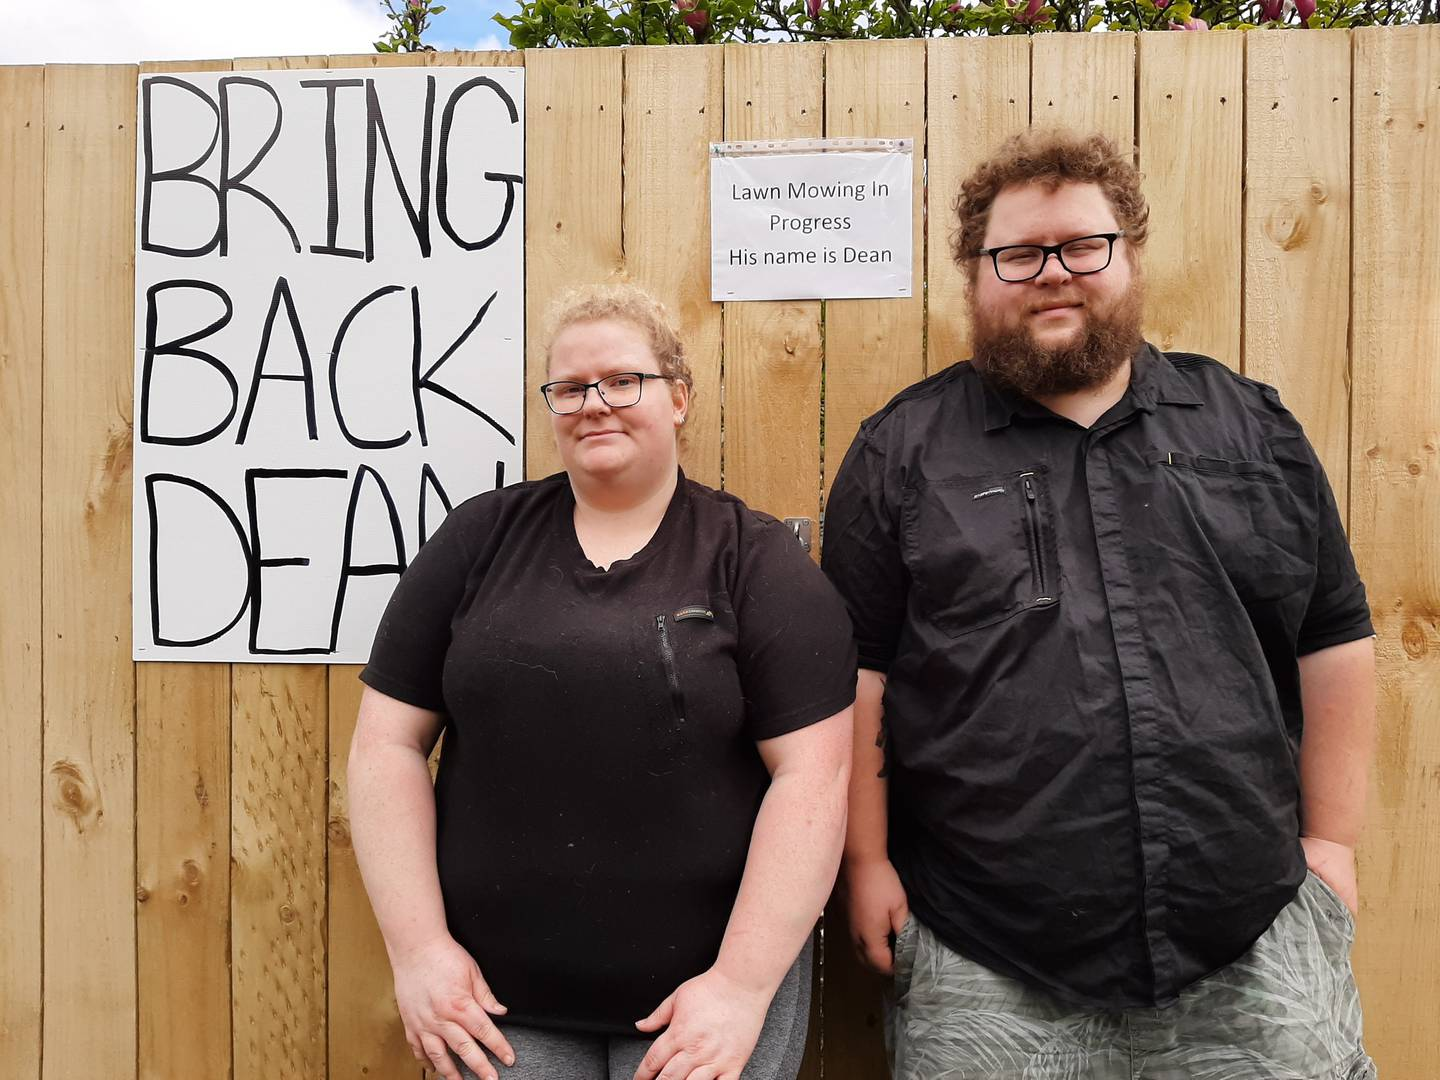 Annalise Orchard and Alistair Nicholson launched a campaign to get Dean back. Photo: Jenny Ling /...